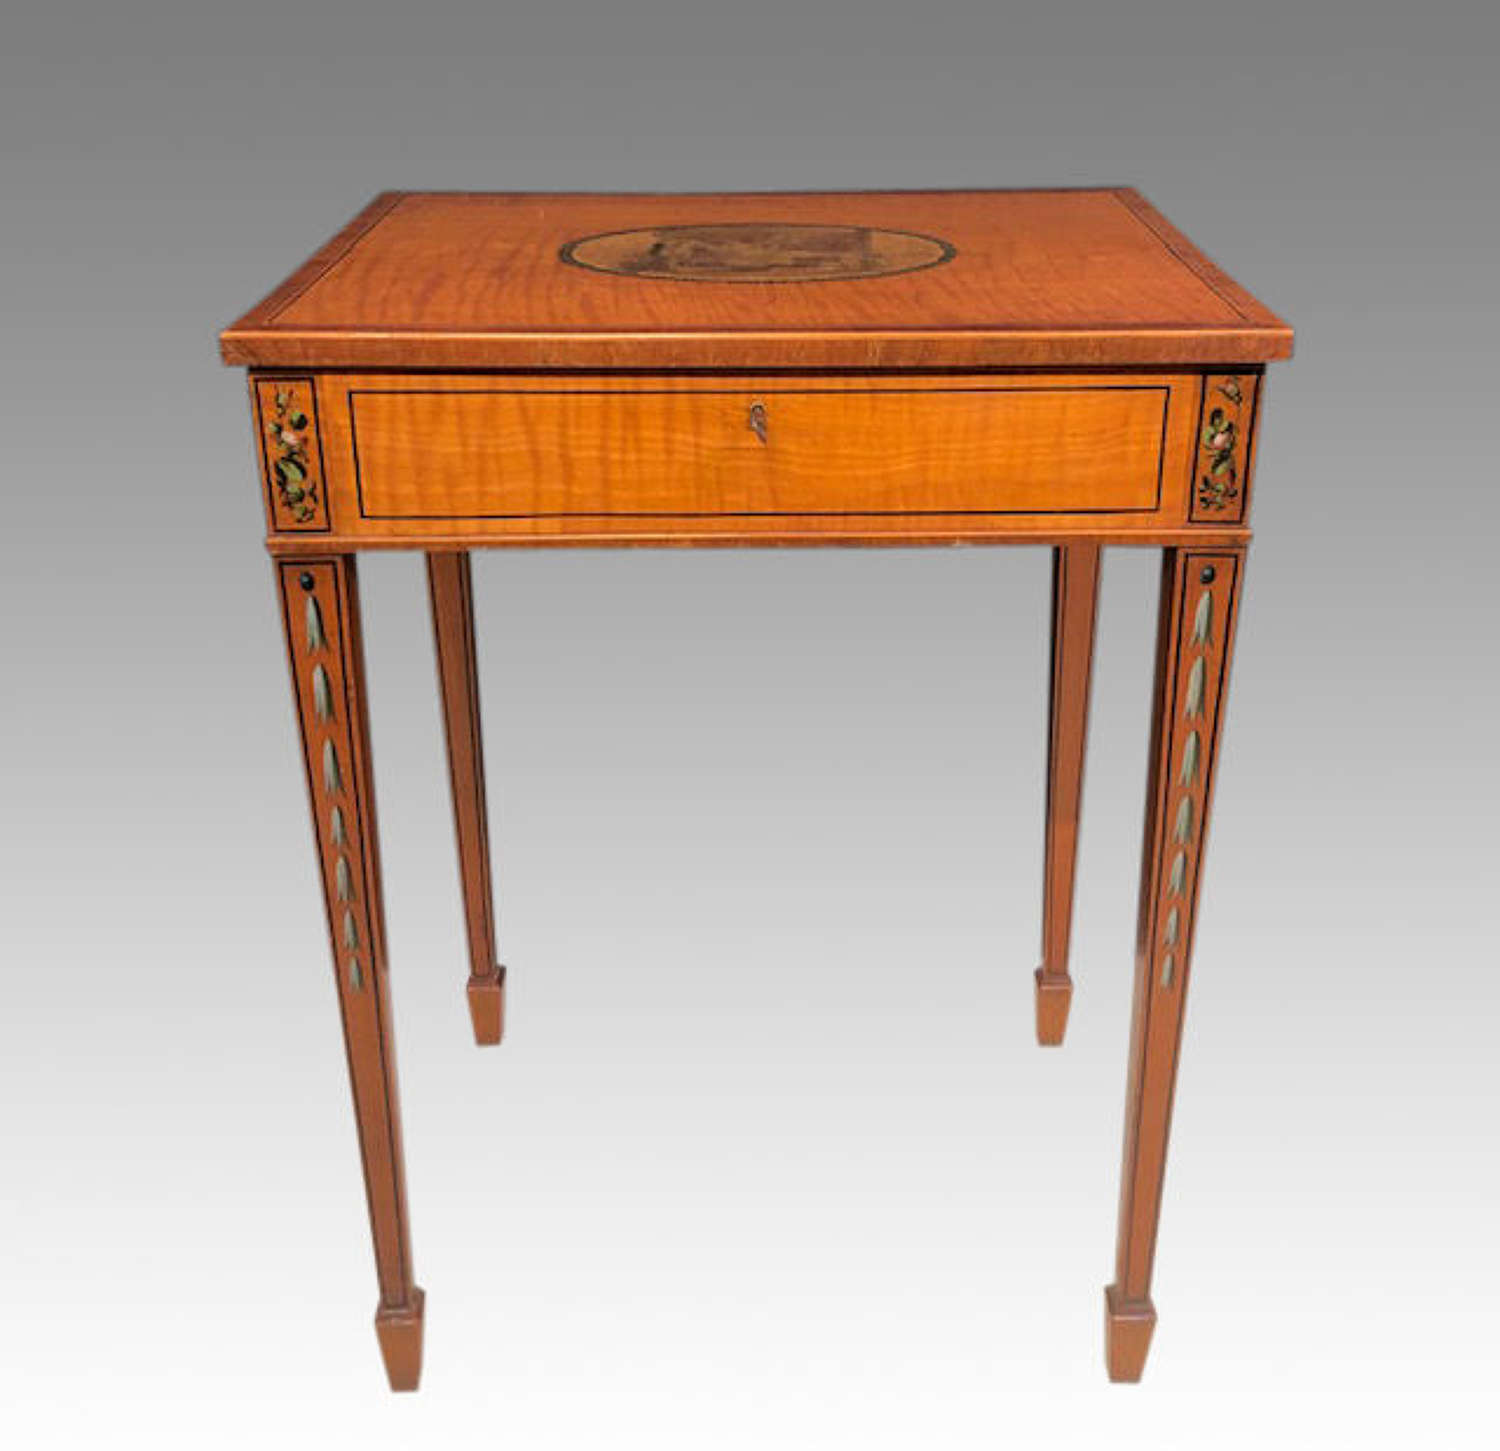 19th century painted satinwood work table.